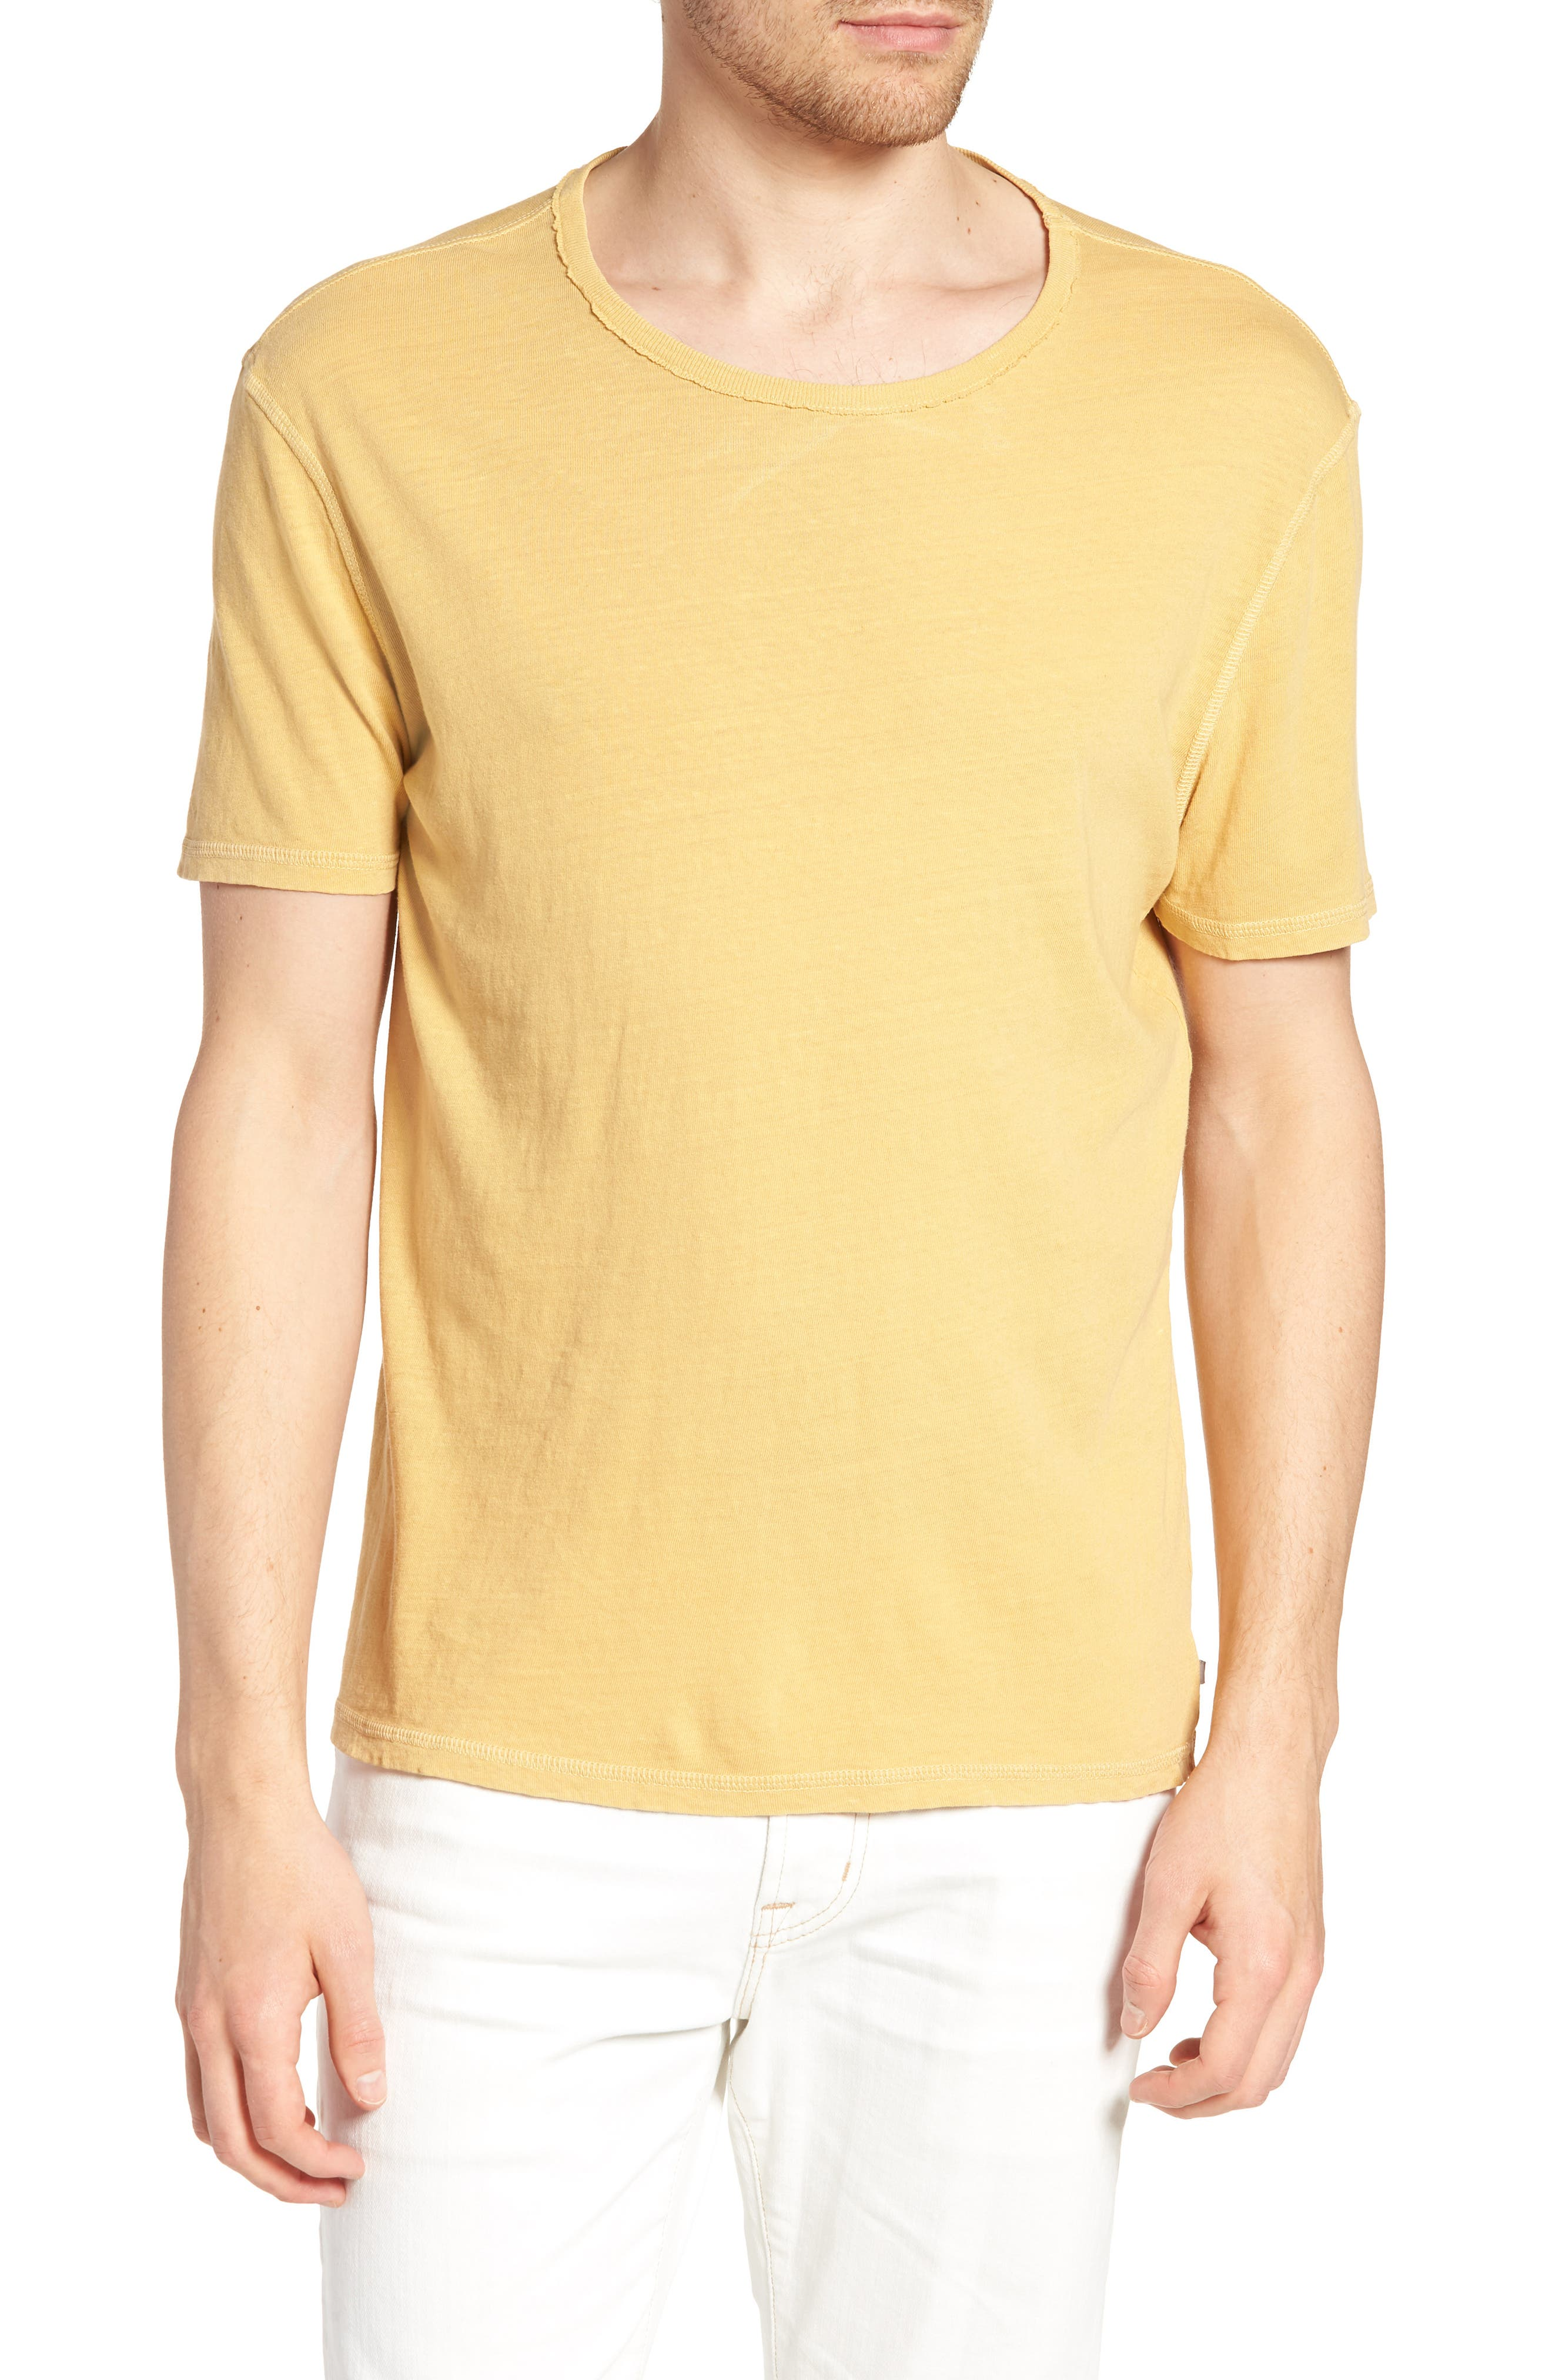 Ramsey Slim Fit Crewneck T-Shirt,                             Main thumbnail 1, color,                             Weathered Golden Emmer